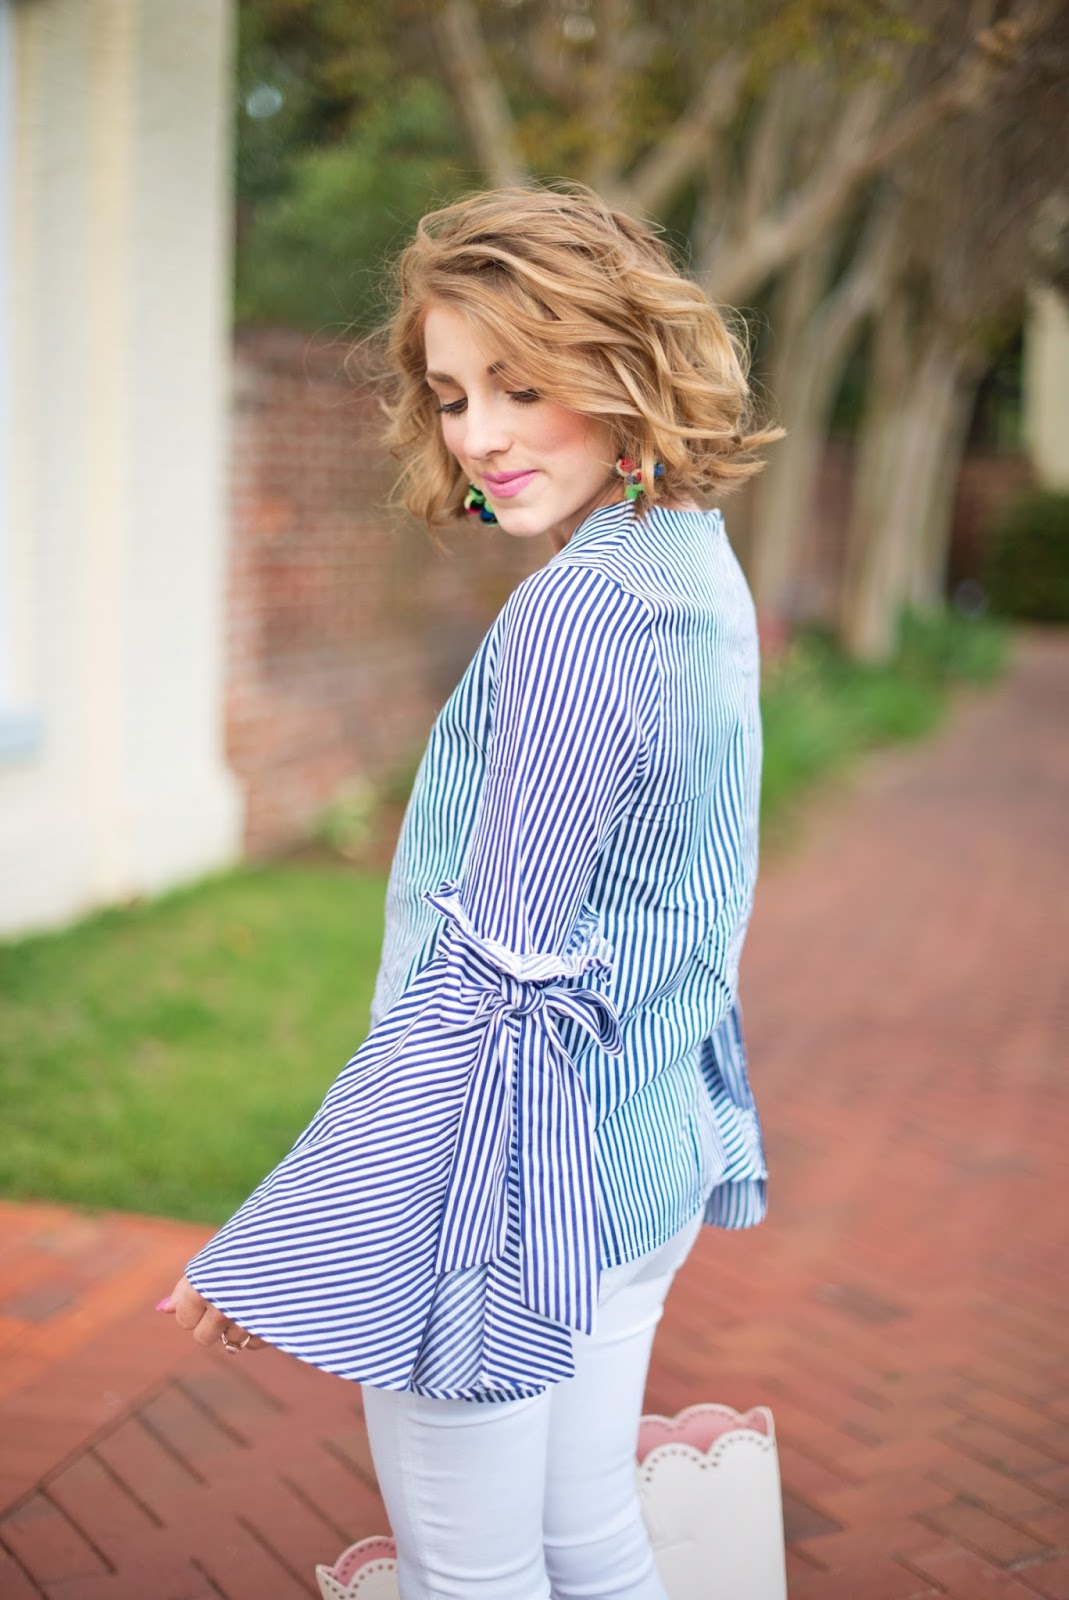 Bell Sleeves - See more on Something Delightful Blog